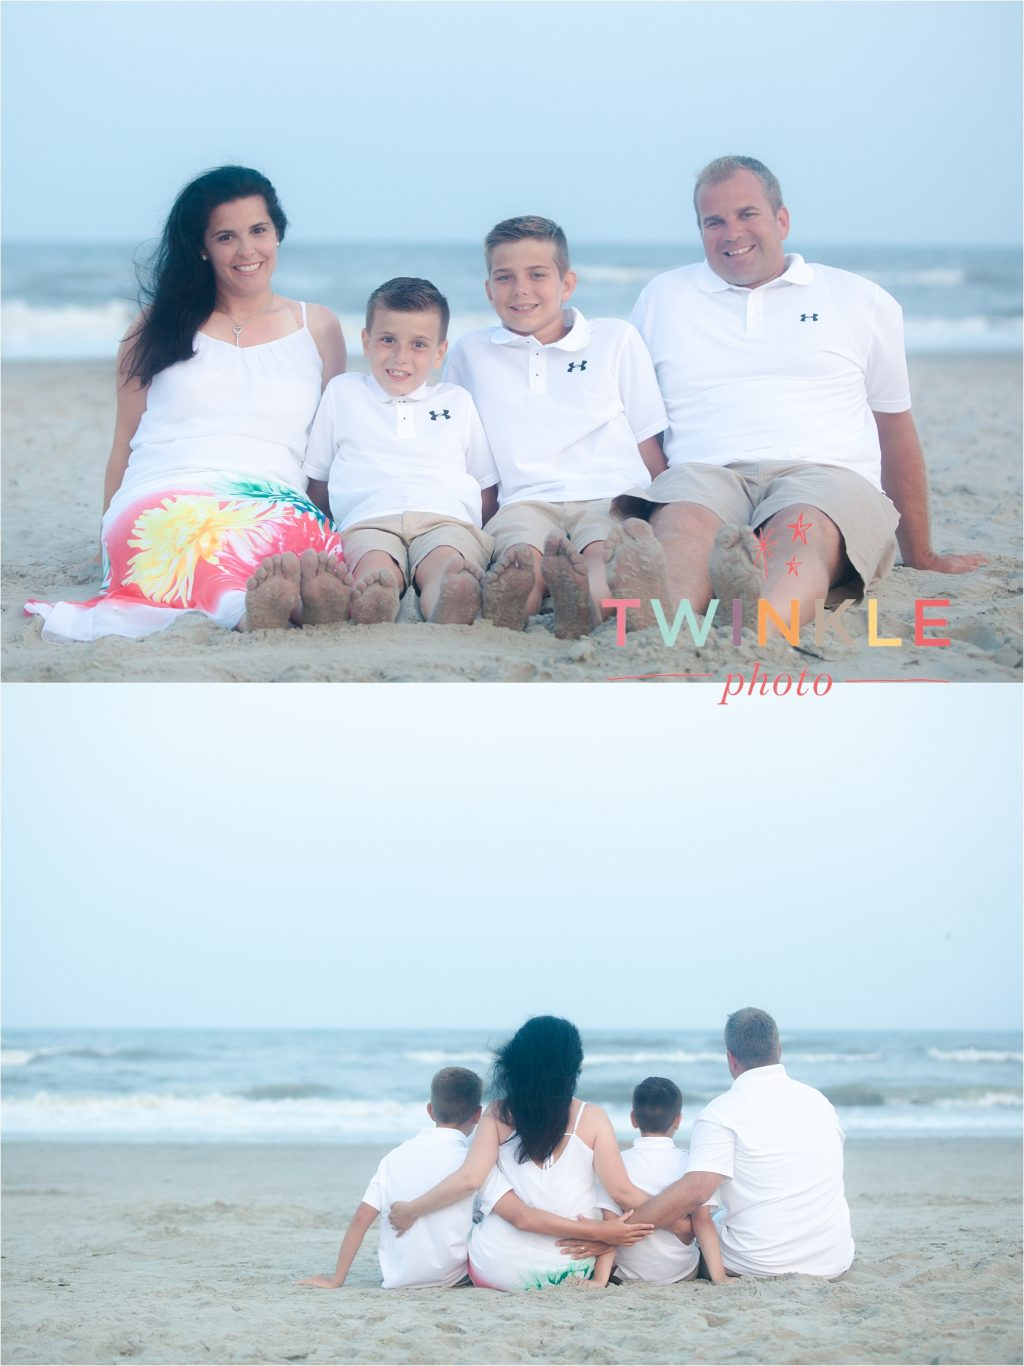 OCNJ Ocean City NJ New Jersey Beach Family Portrait Photographer Photography Twinkle Photo-14